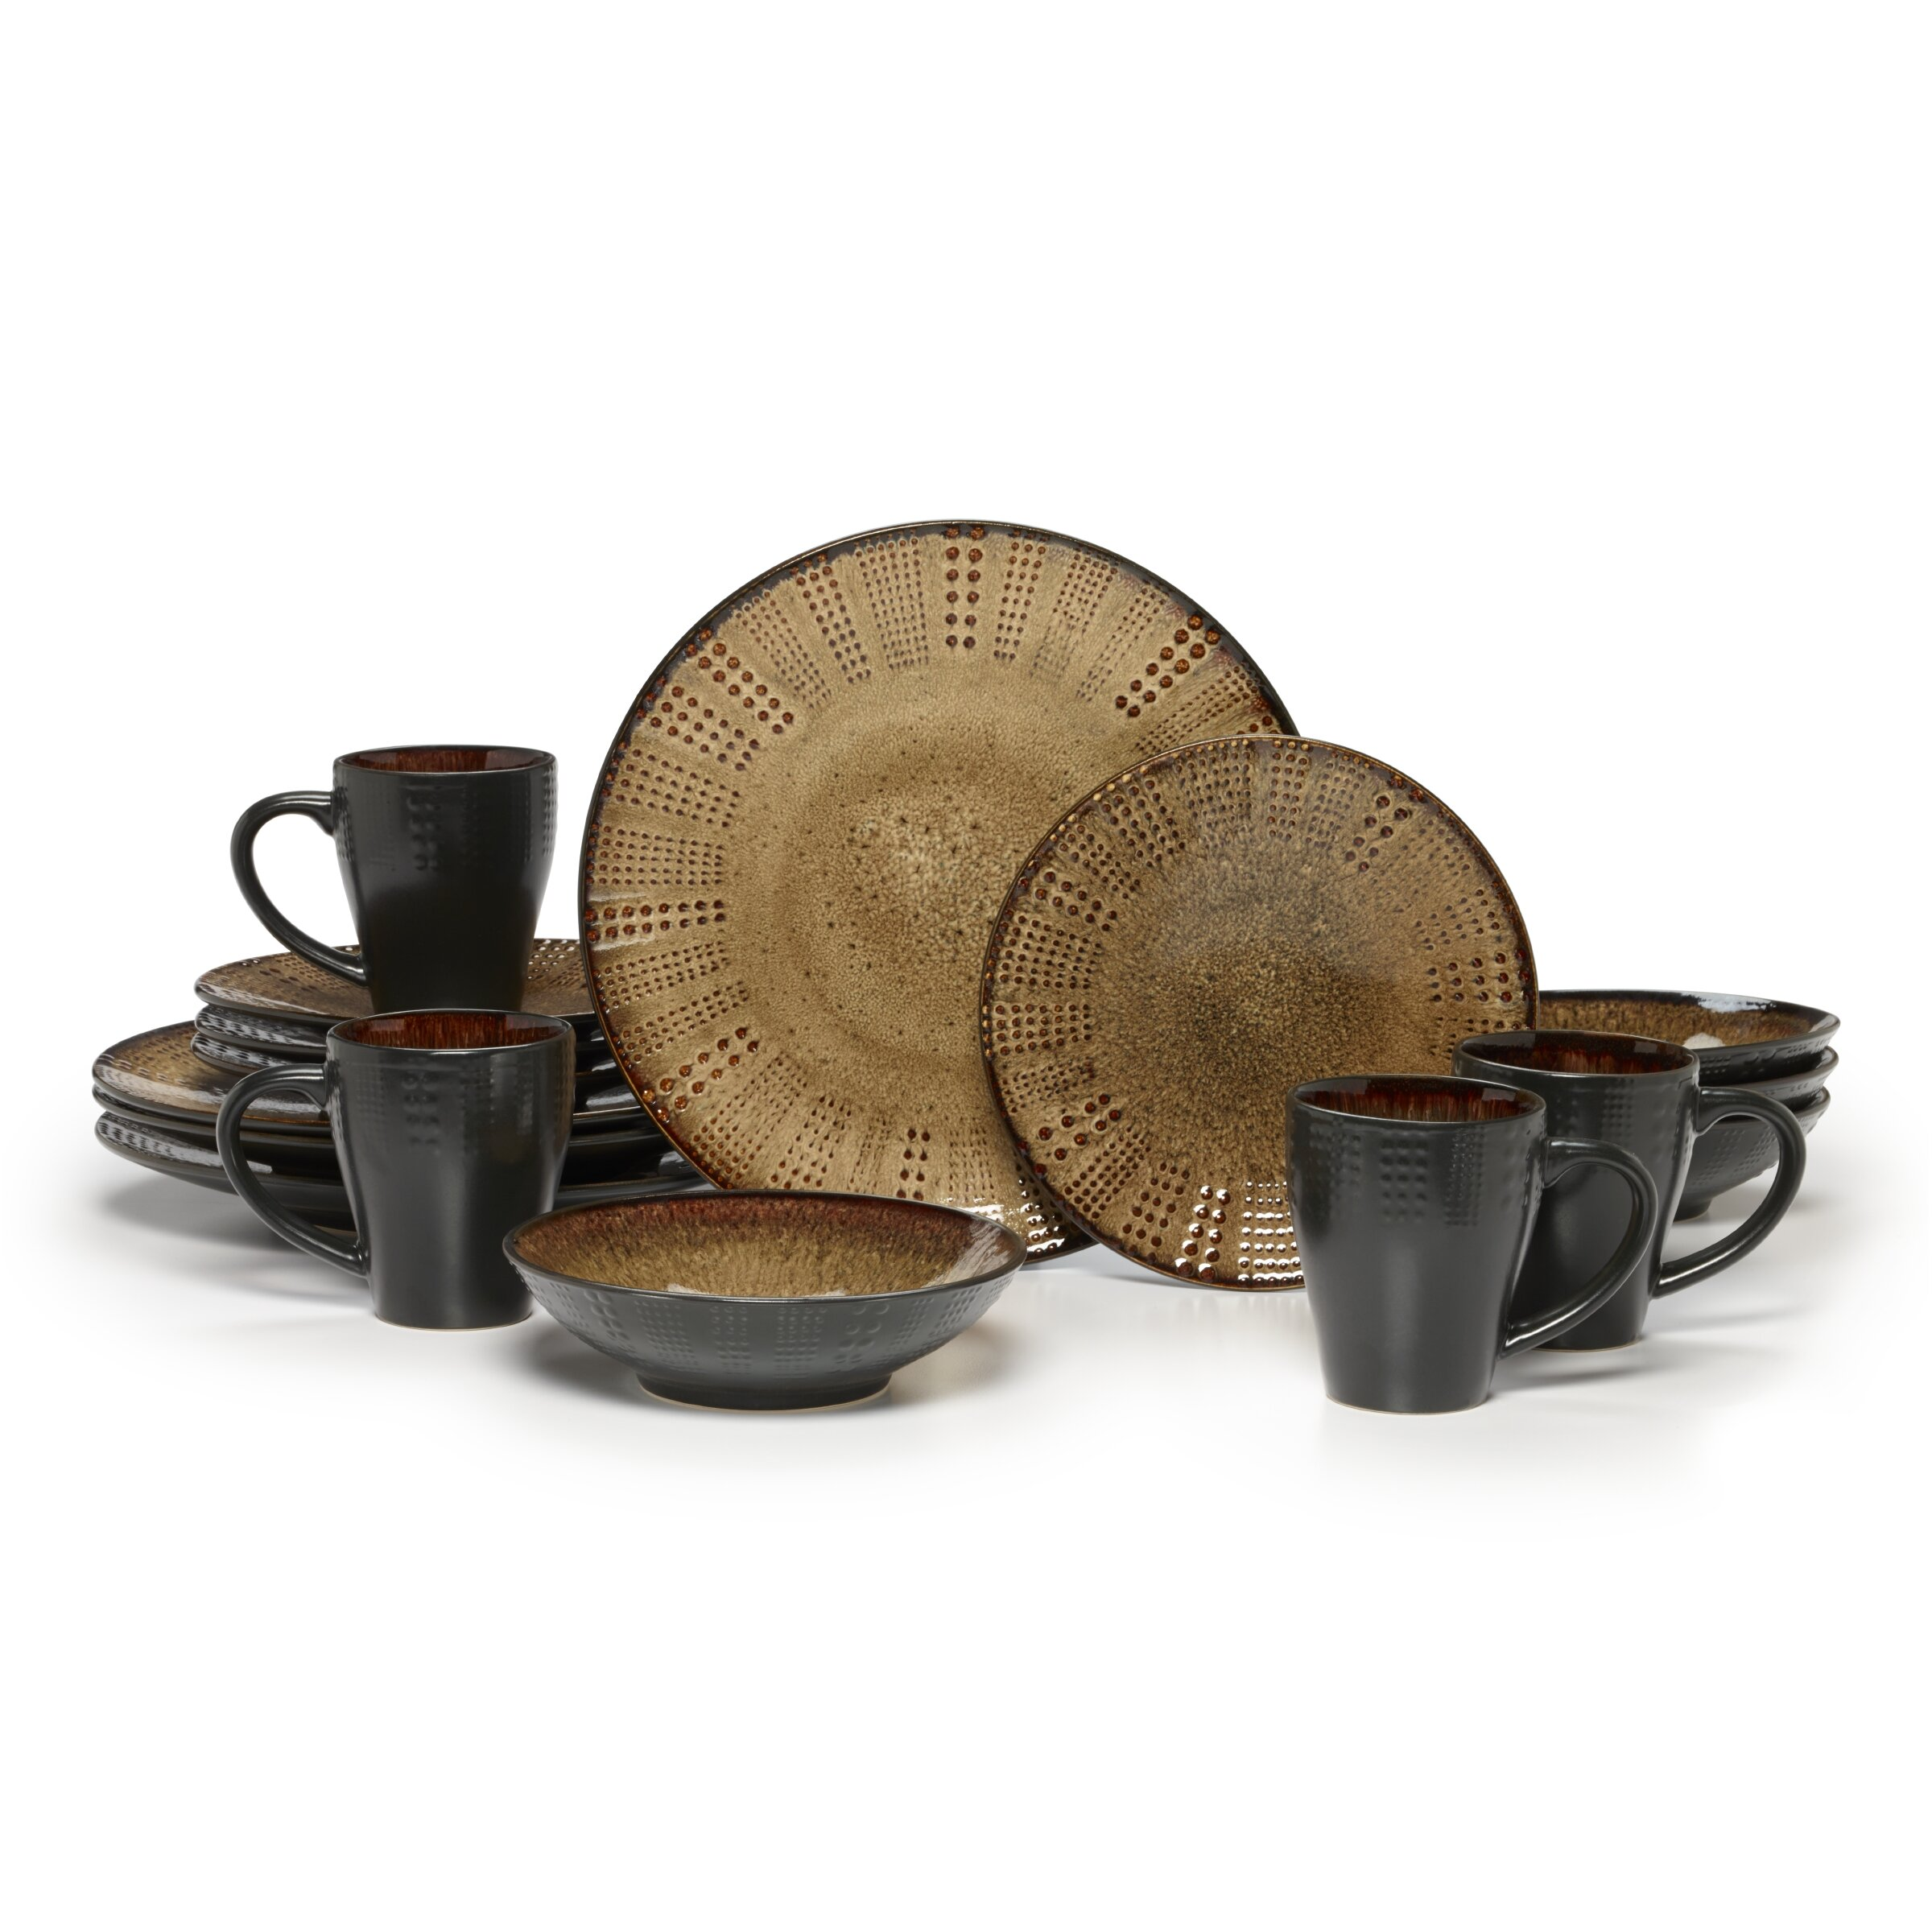 Gourmet Basics by Mikasa Linden 16 Piece Dinnerware Set, Service for ...